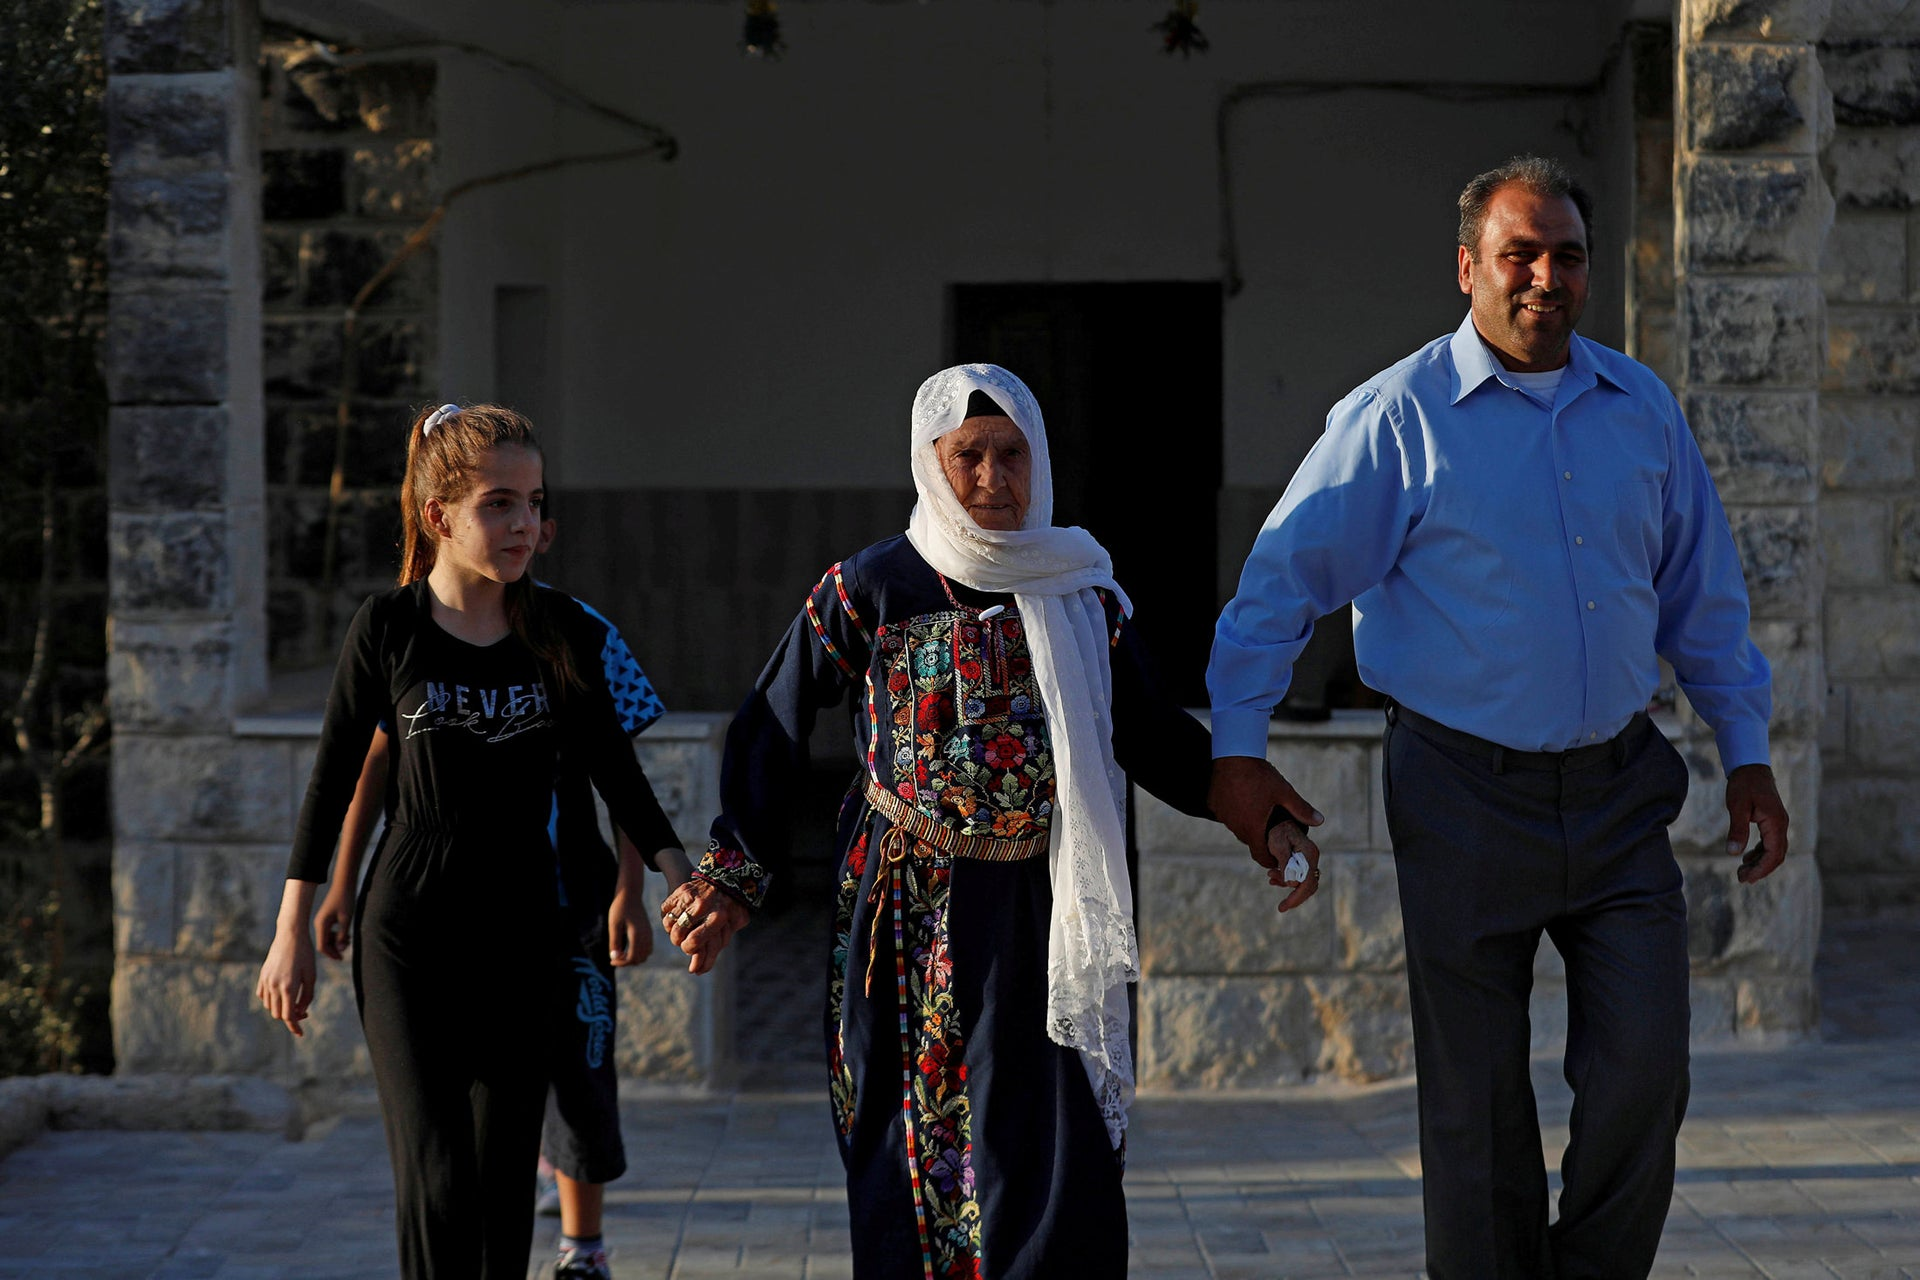 Muftia, the grandmother of U.S. congresswoman Rashida Tlaib, walks with her son and her granddaughter outside her house in the village of Beit Ur Al-Fauqa in the West Bank, August 16, 2019.